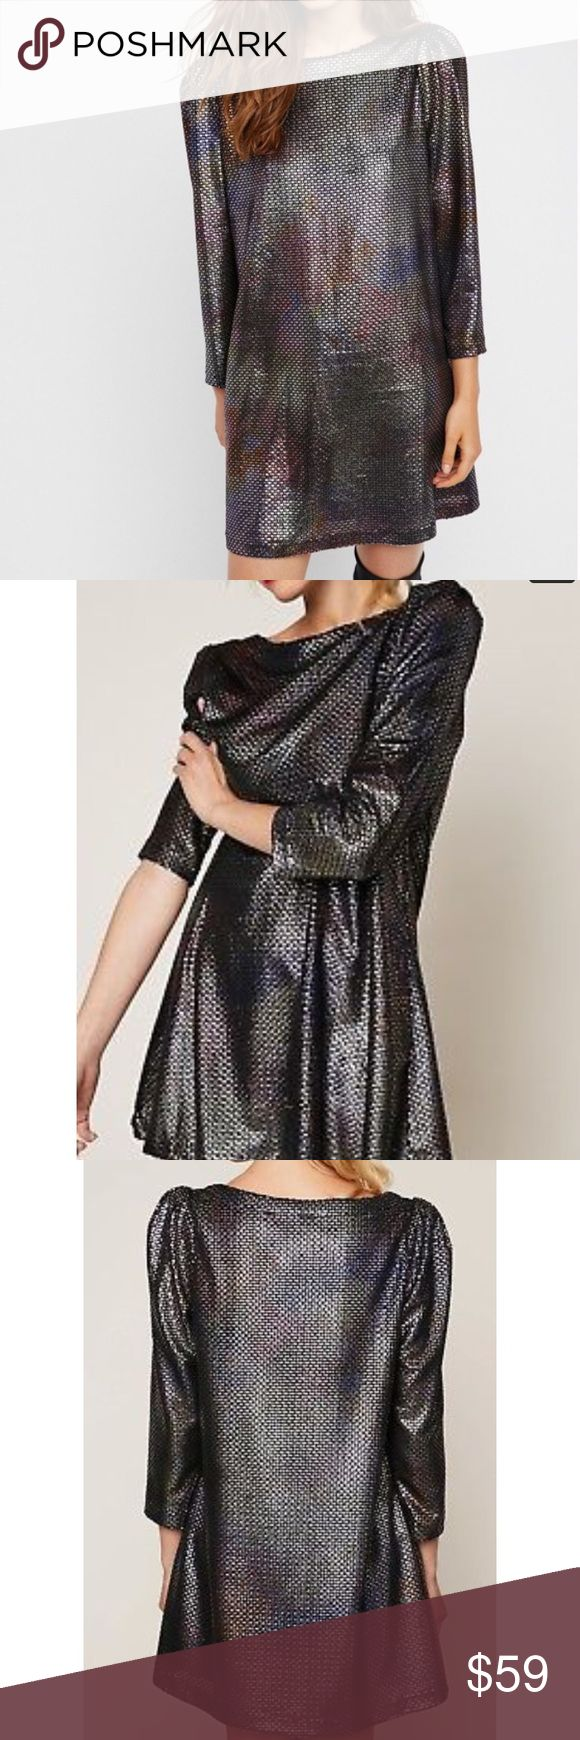 """Free People Diamonds are Forever Dress! So pretty! NWT. Size Large Shine on in this long sleeve metallic mini dress featuring structured shoulders and a swingy silhouette.  Side pockets Care/Import  Hand Wash Cold  Import  Measurements for size L  Flat chest measures 22"""" Length: 34 in Sleeve Length: 21.5 in Free People Dresses Mini"""